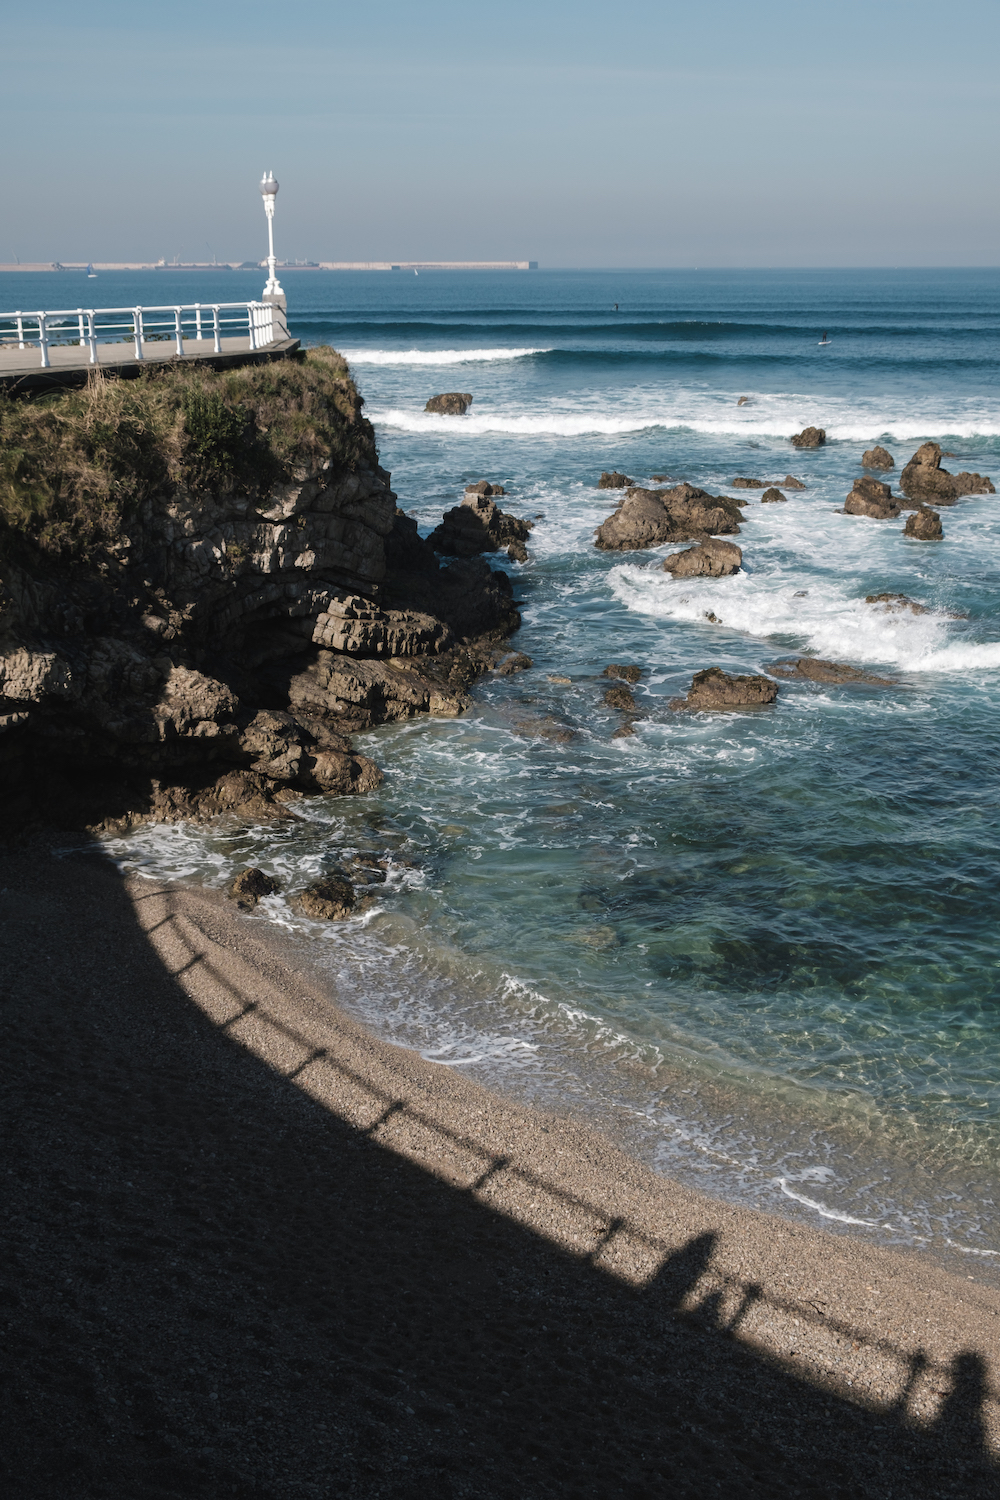 Playa del Rinconin, Gijon, Asturias, Northern Spain - Photography by Ben Holbrook from DriftwoodJournals.com